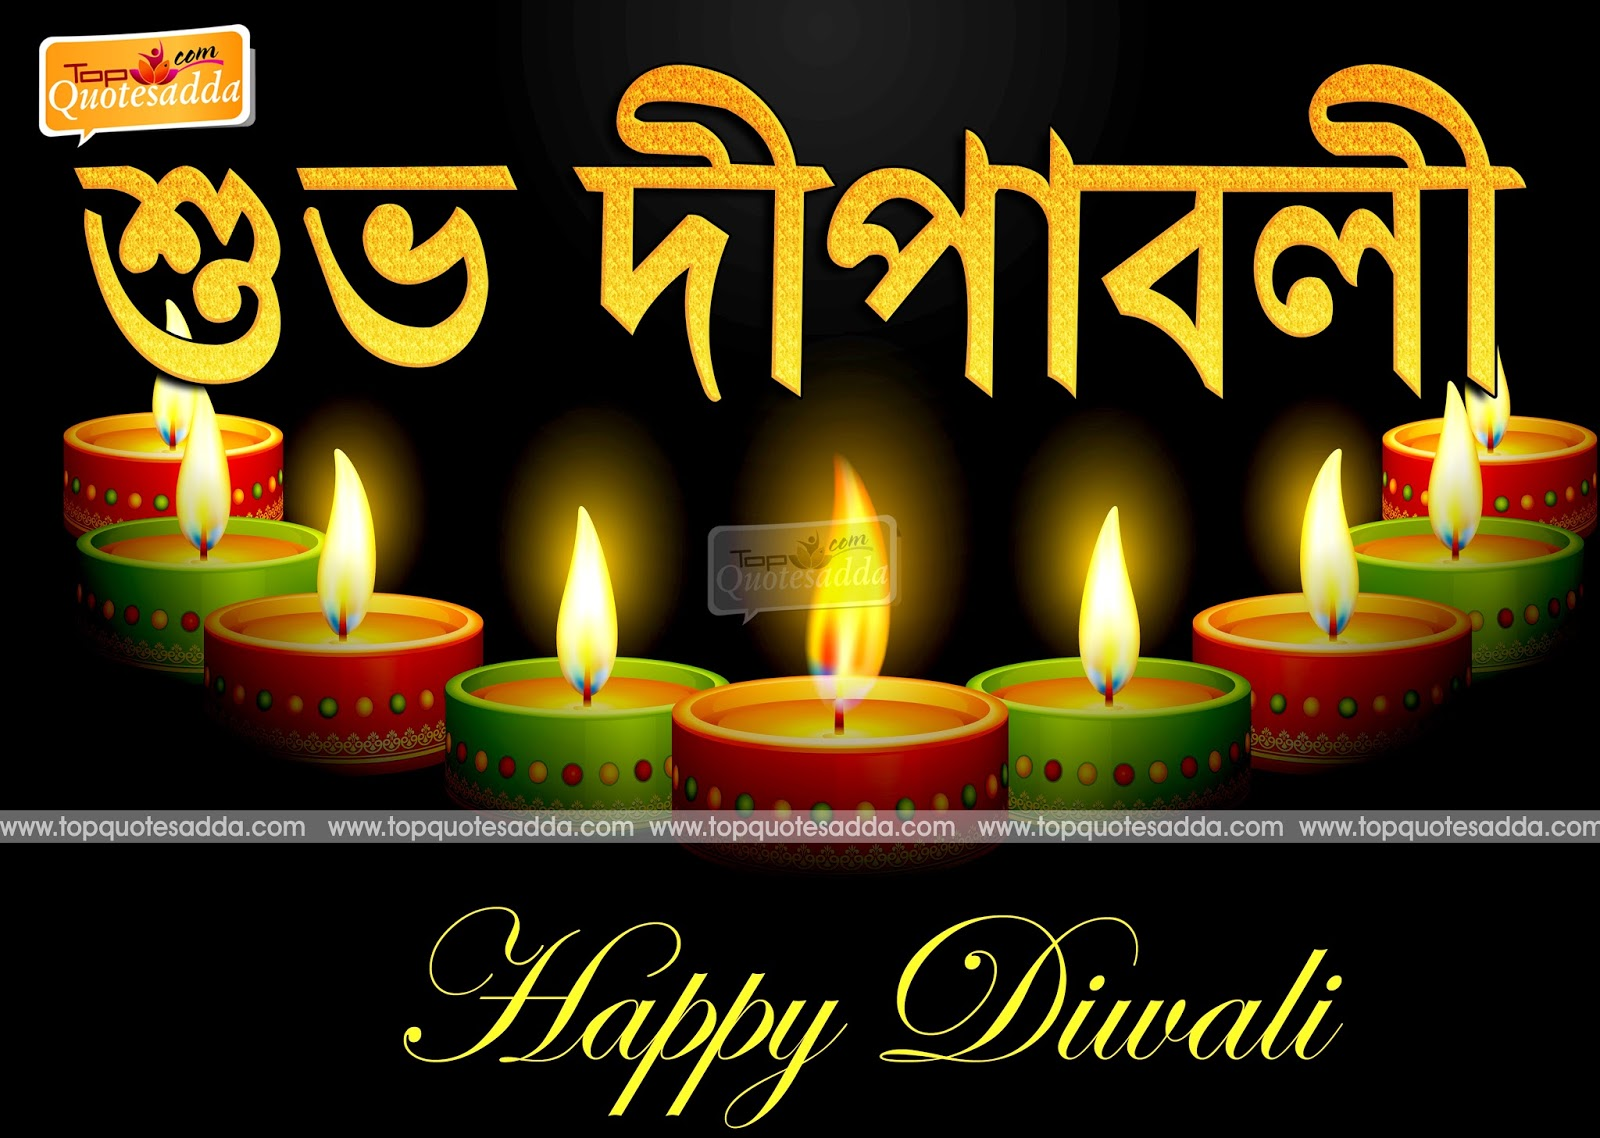 Bangali diwali wishes picture quotes and wishes for facebook happy diwali bengali wishes quotes and greetings topquotesadda m4hsunfo